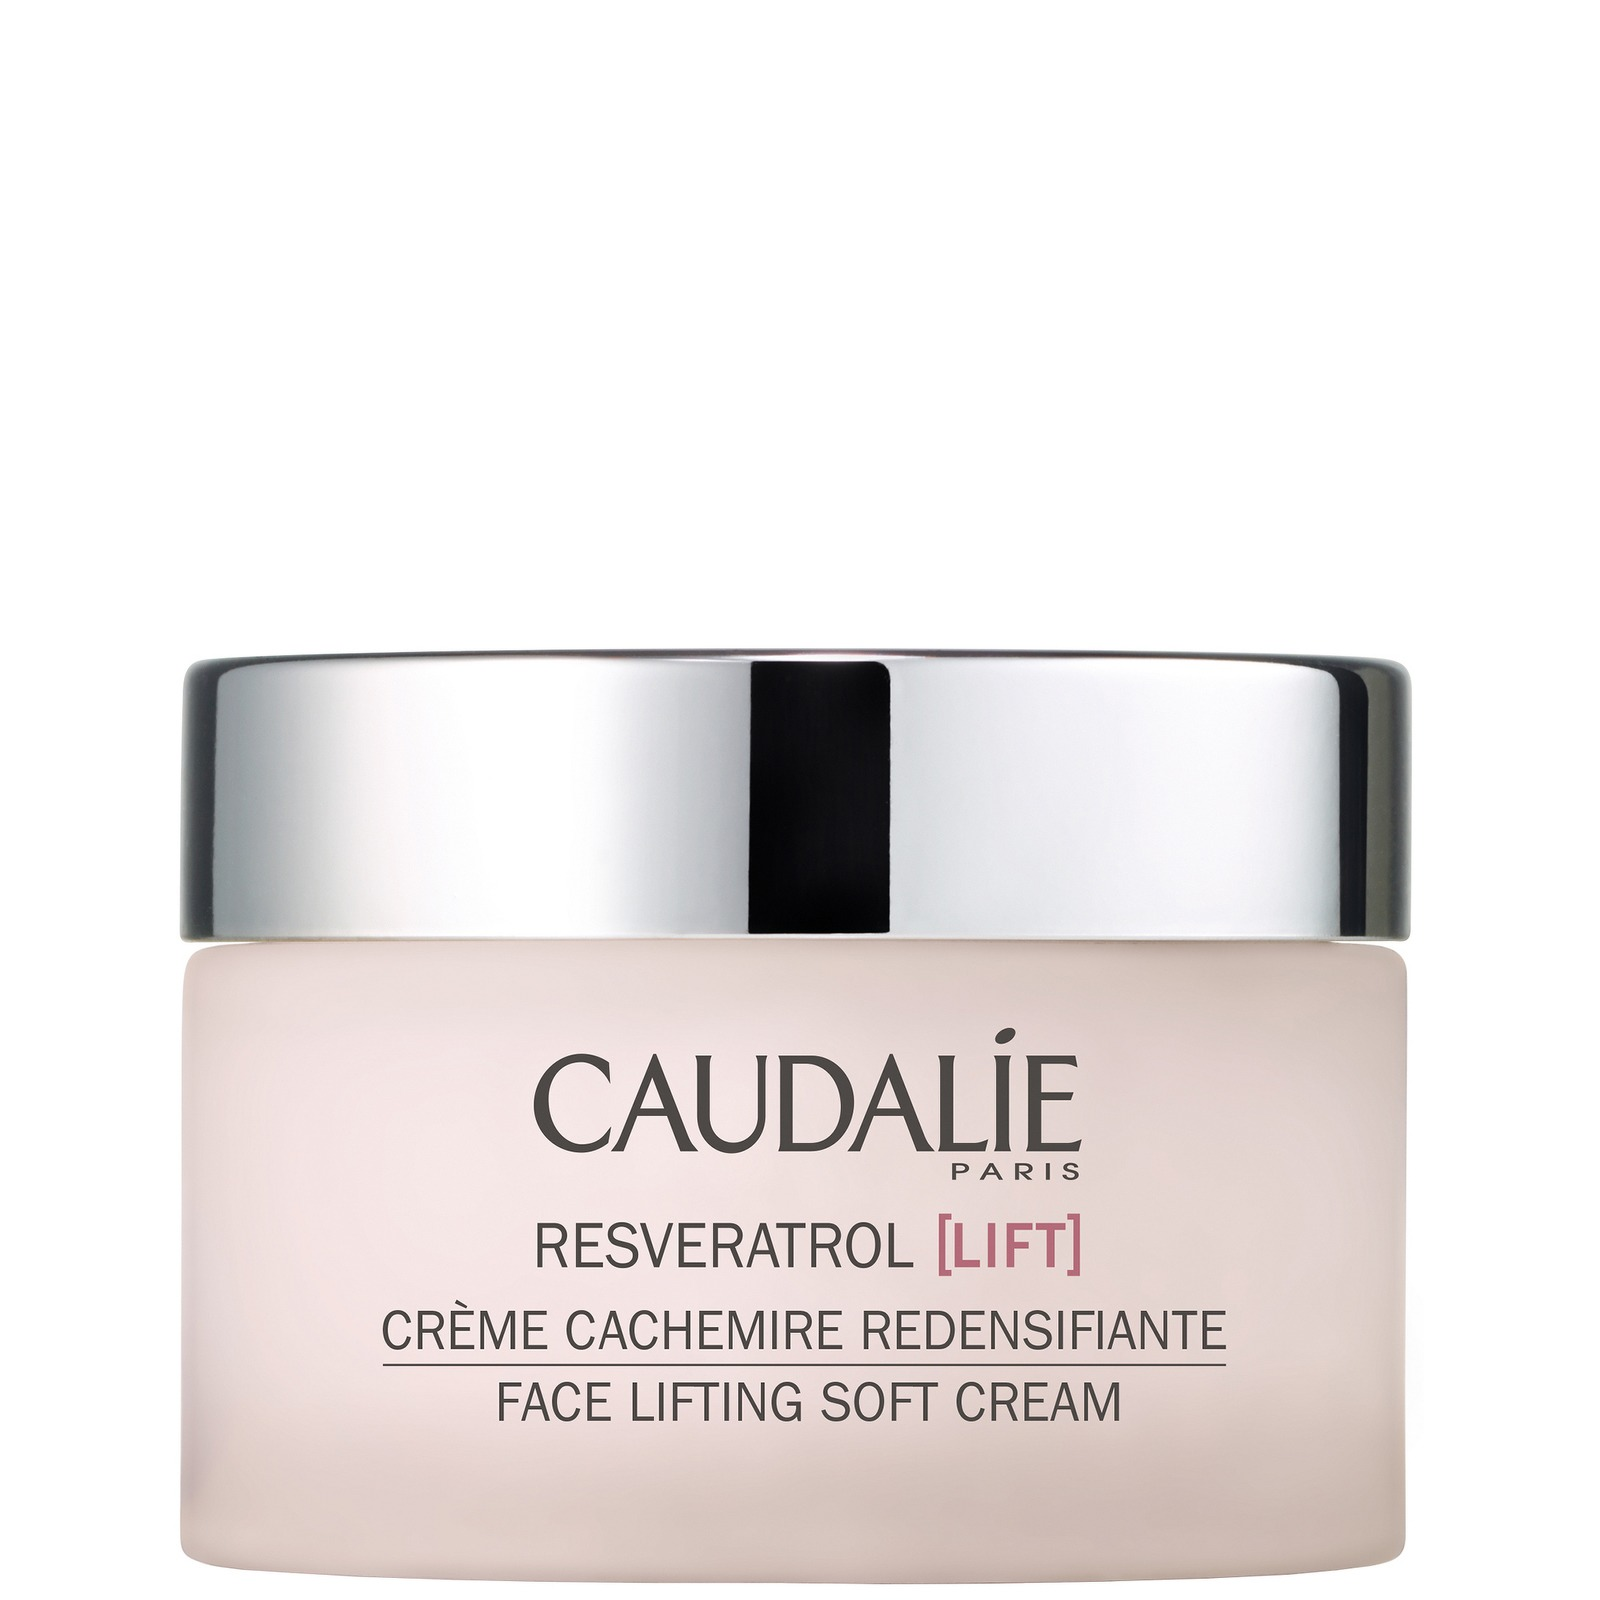 Caudalie Moisturisers Resvératrol [Lift] Face Lifting Soft Cream 50ml